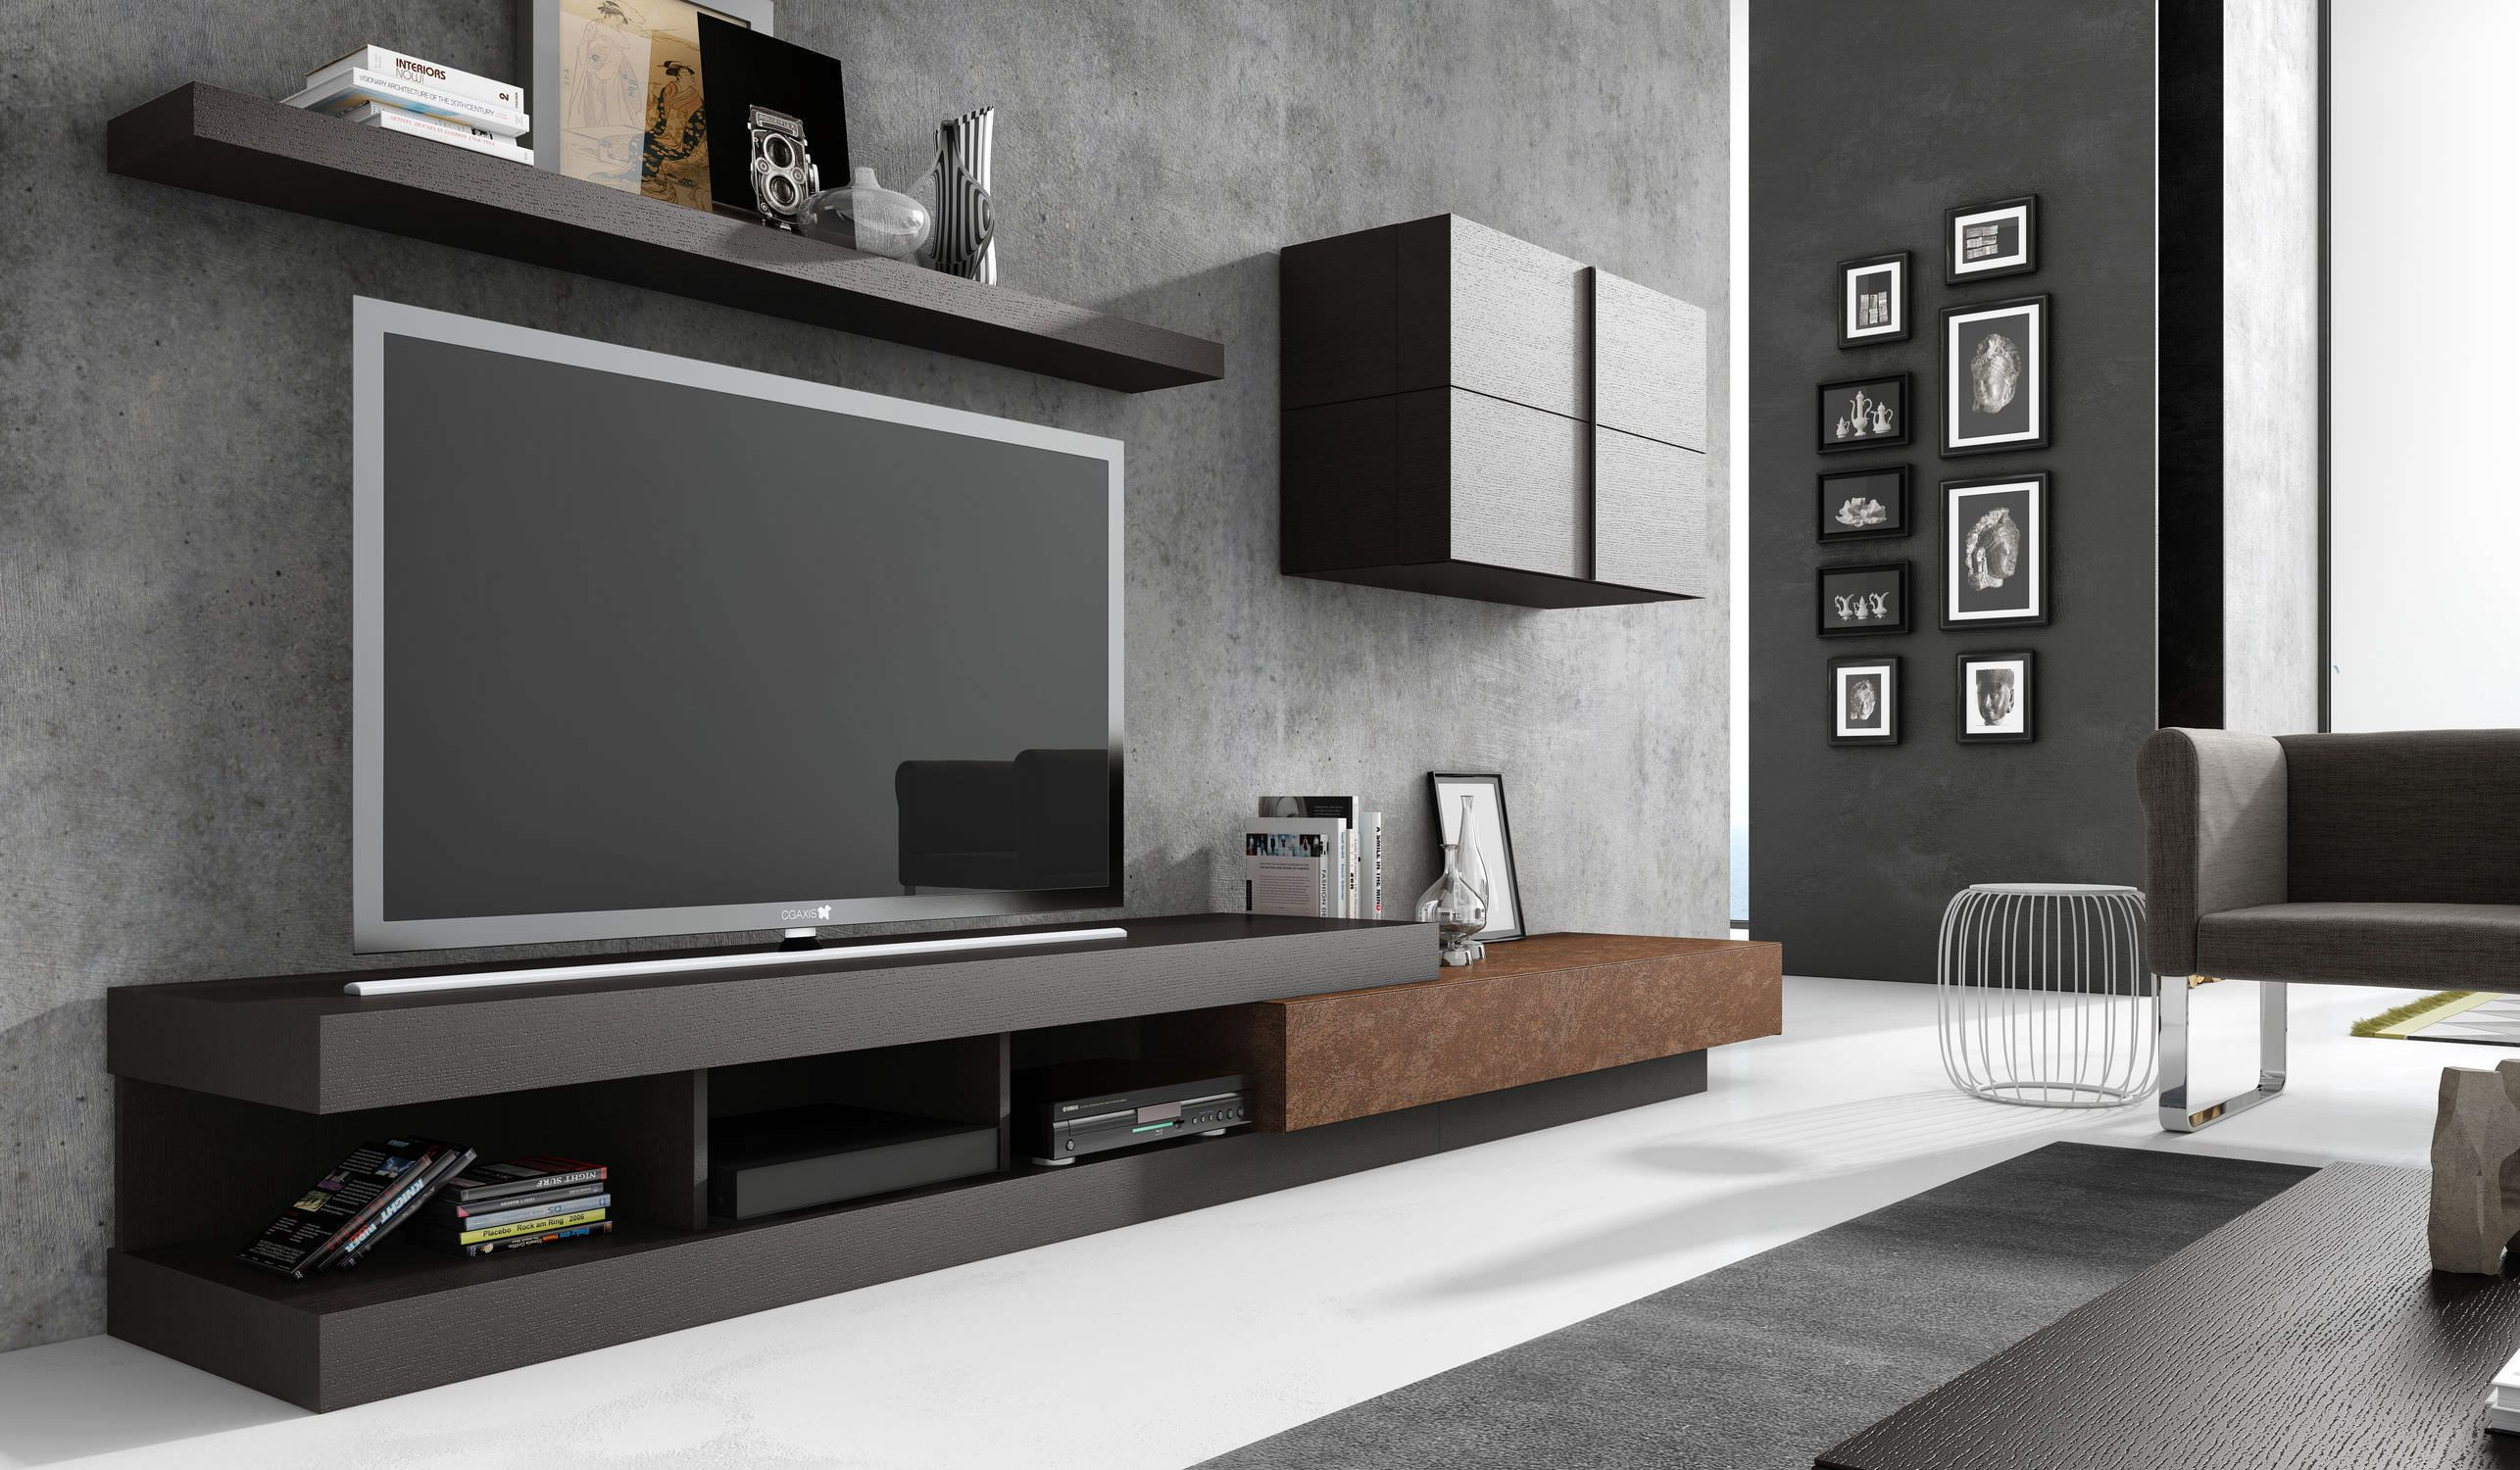 Inspirant Meuble Tv Contemporain Design Meuble Tele Idees De